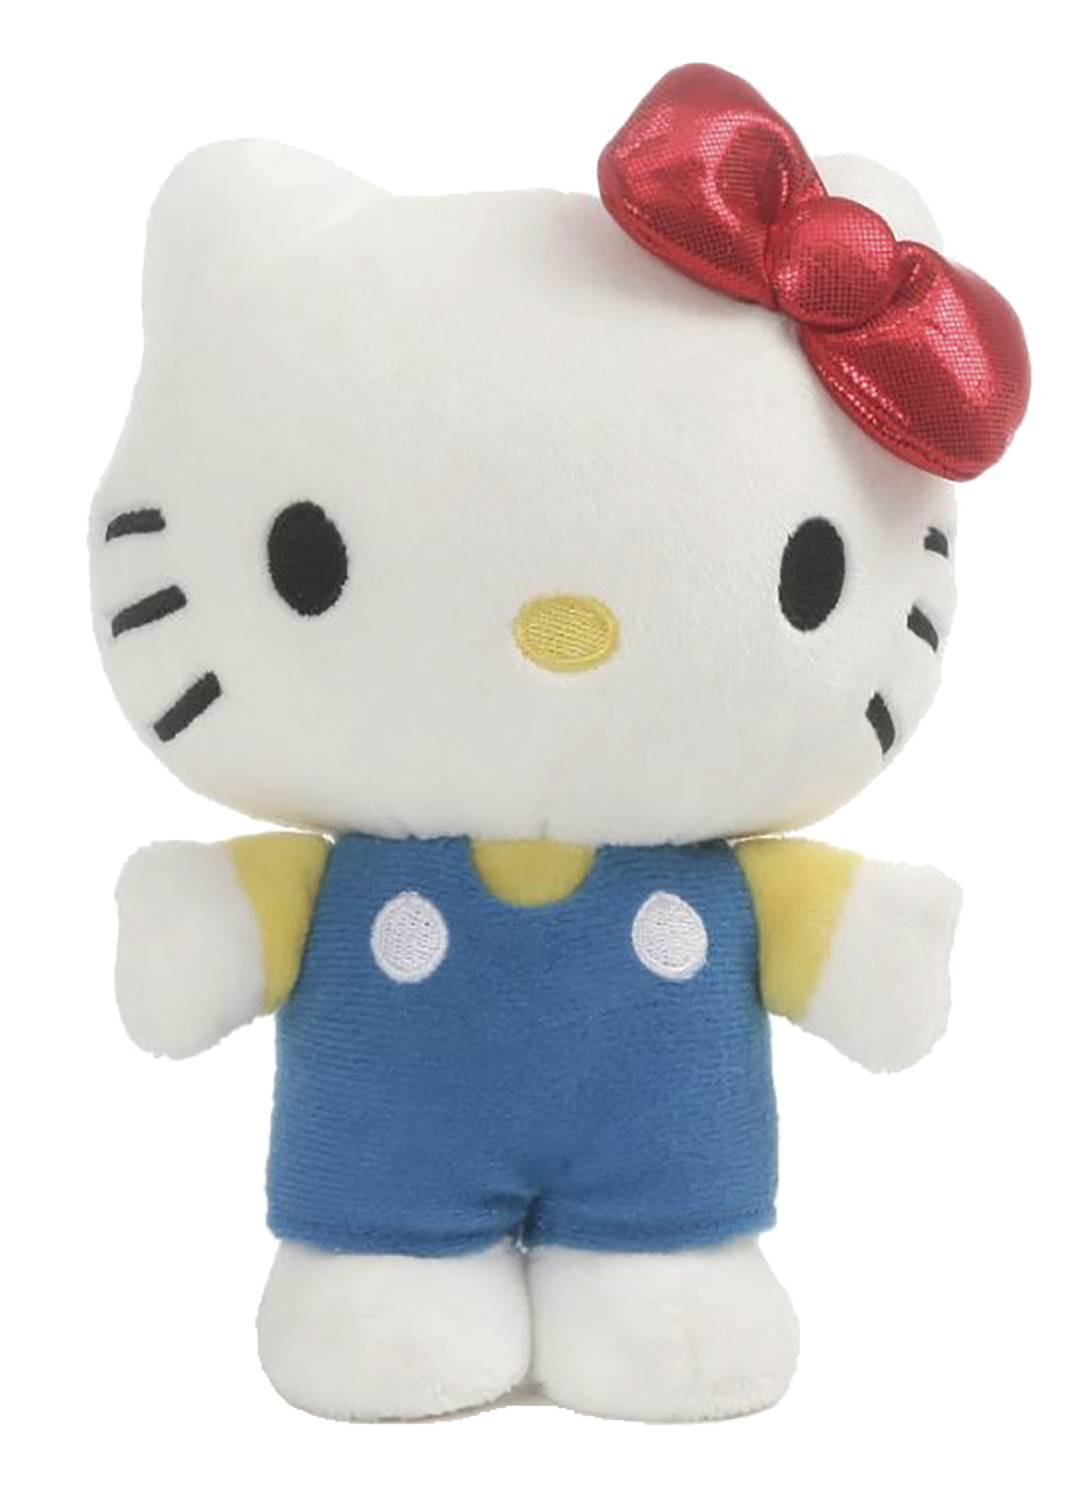 HELLO KITTY CLASSIC STANDING 6IN PLUSH